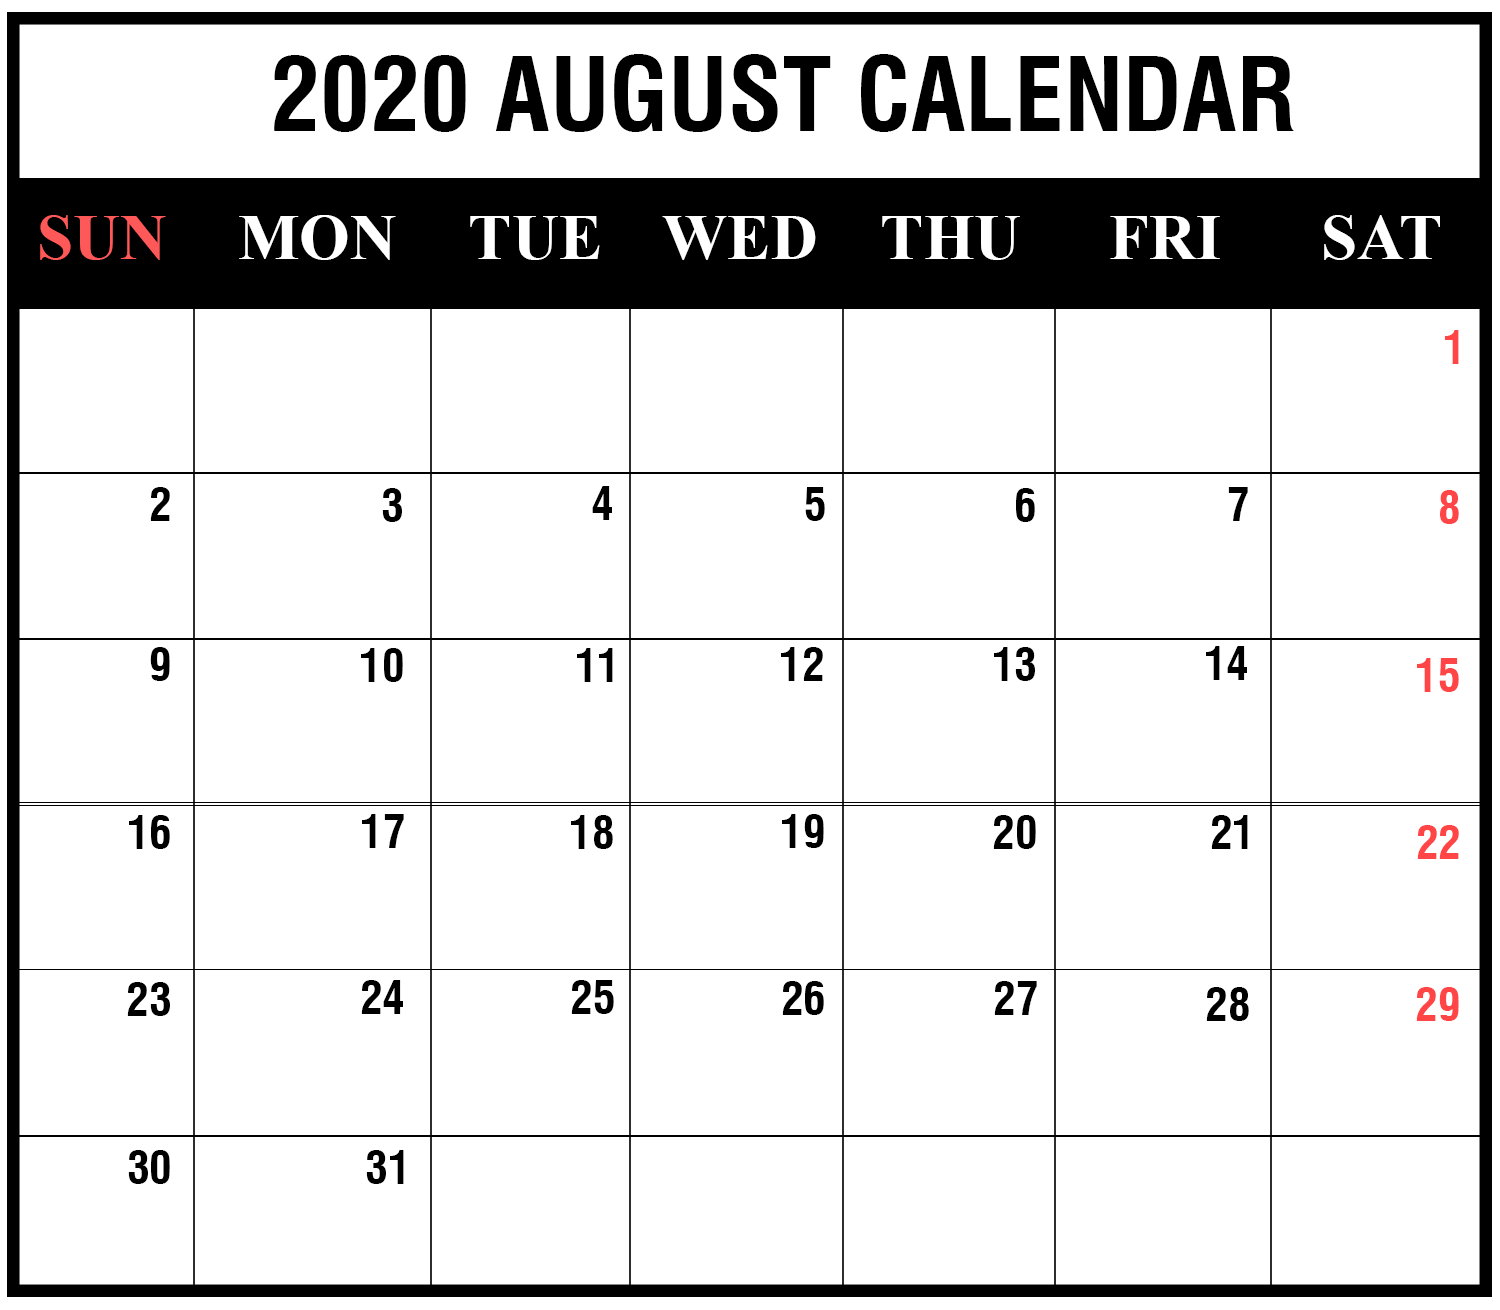 August 2020 Calendar With Holiday